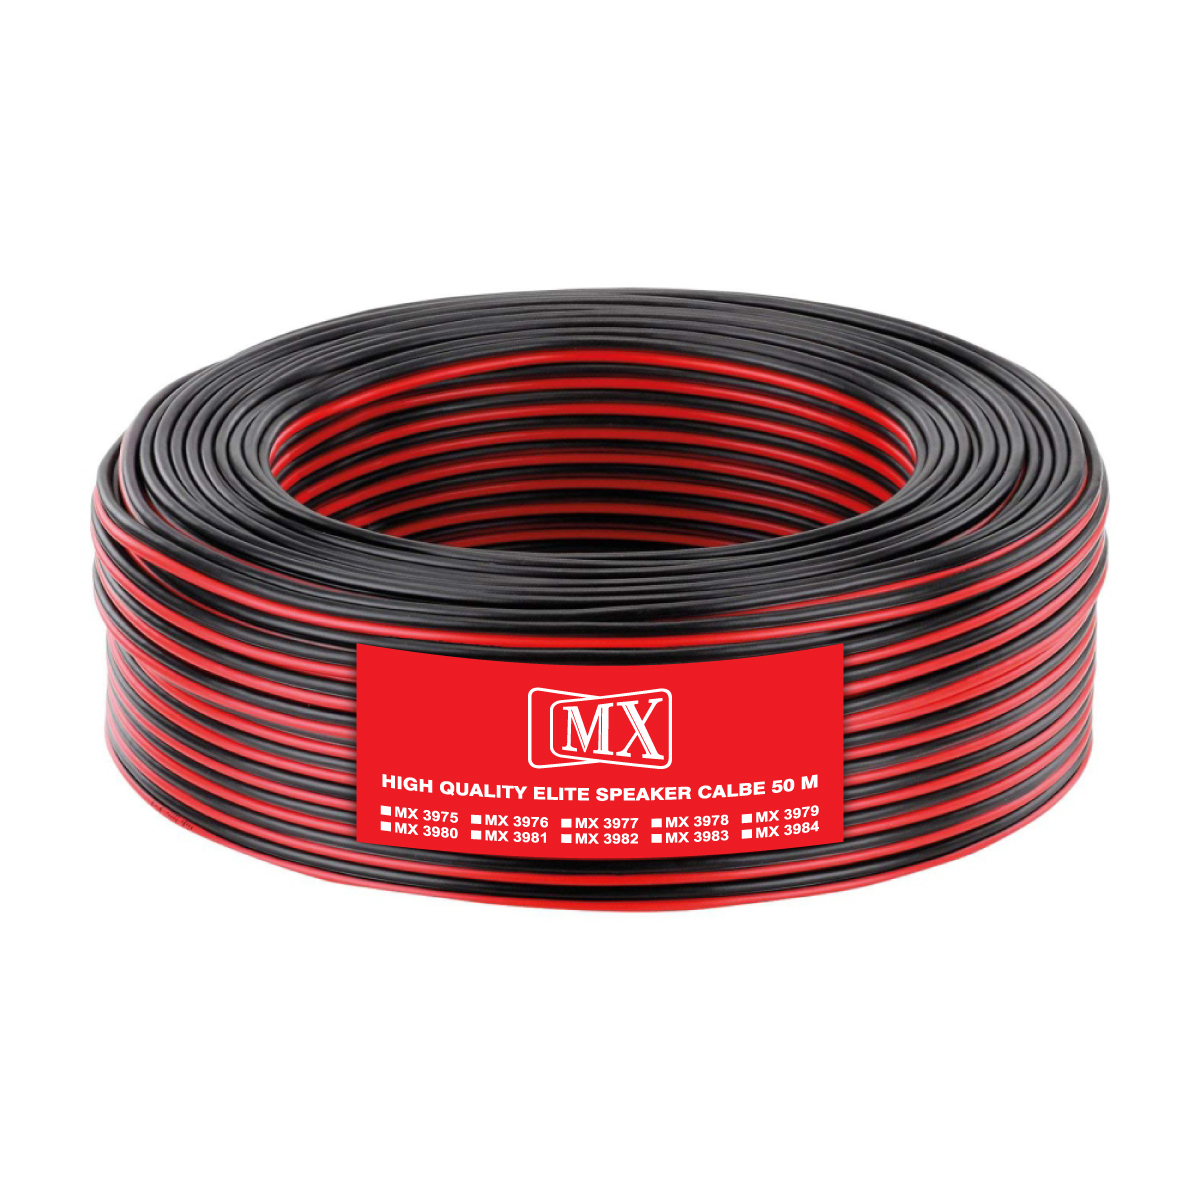 Mx Mdr Electronics Hdmi Cctv Camera Dvr Sdi Home Theater Cable Wiring High Performance Speaker Red Black 14 Wire Od 22mm